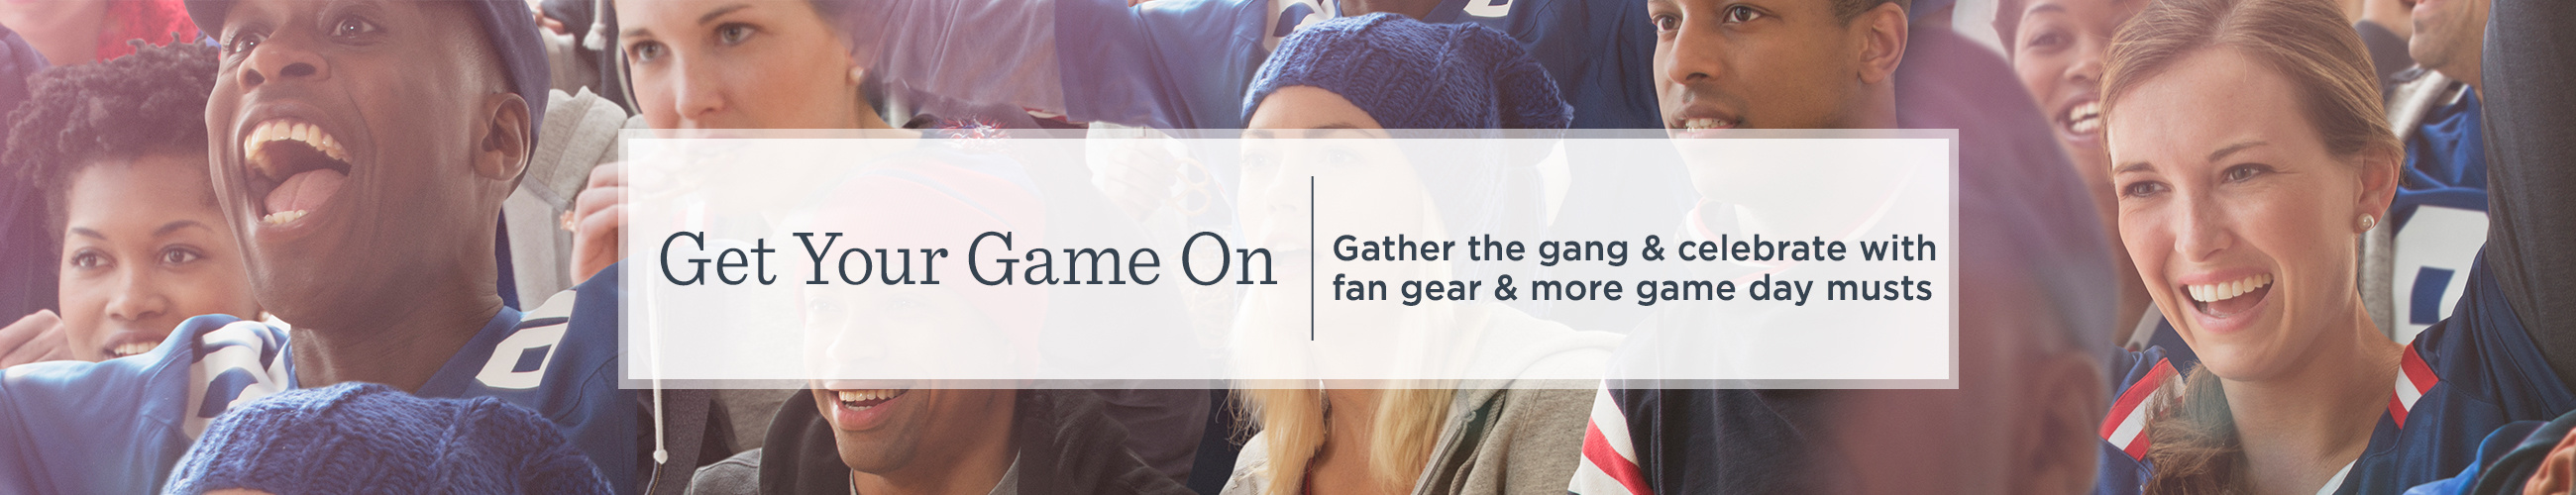 Get Your Game On  Gather the gang & celebrate with fan gear & more game day musts